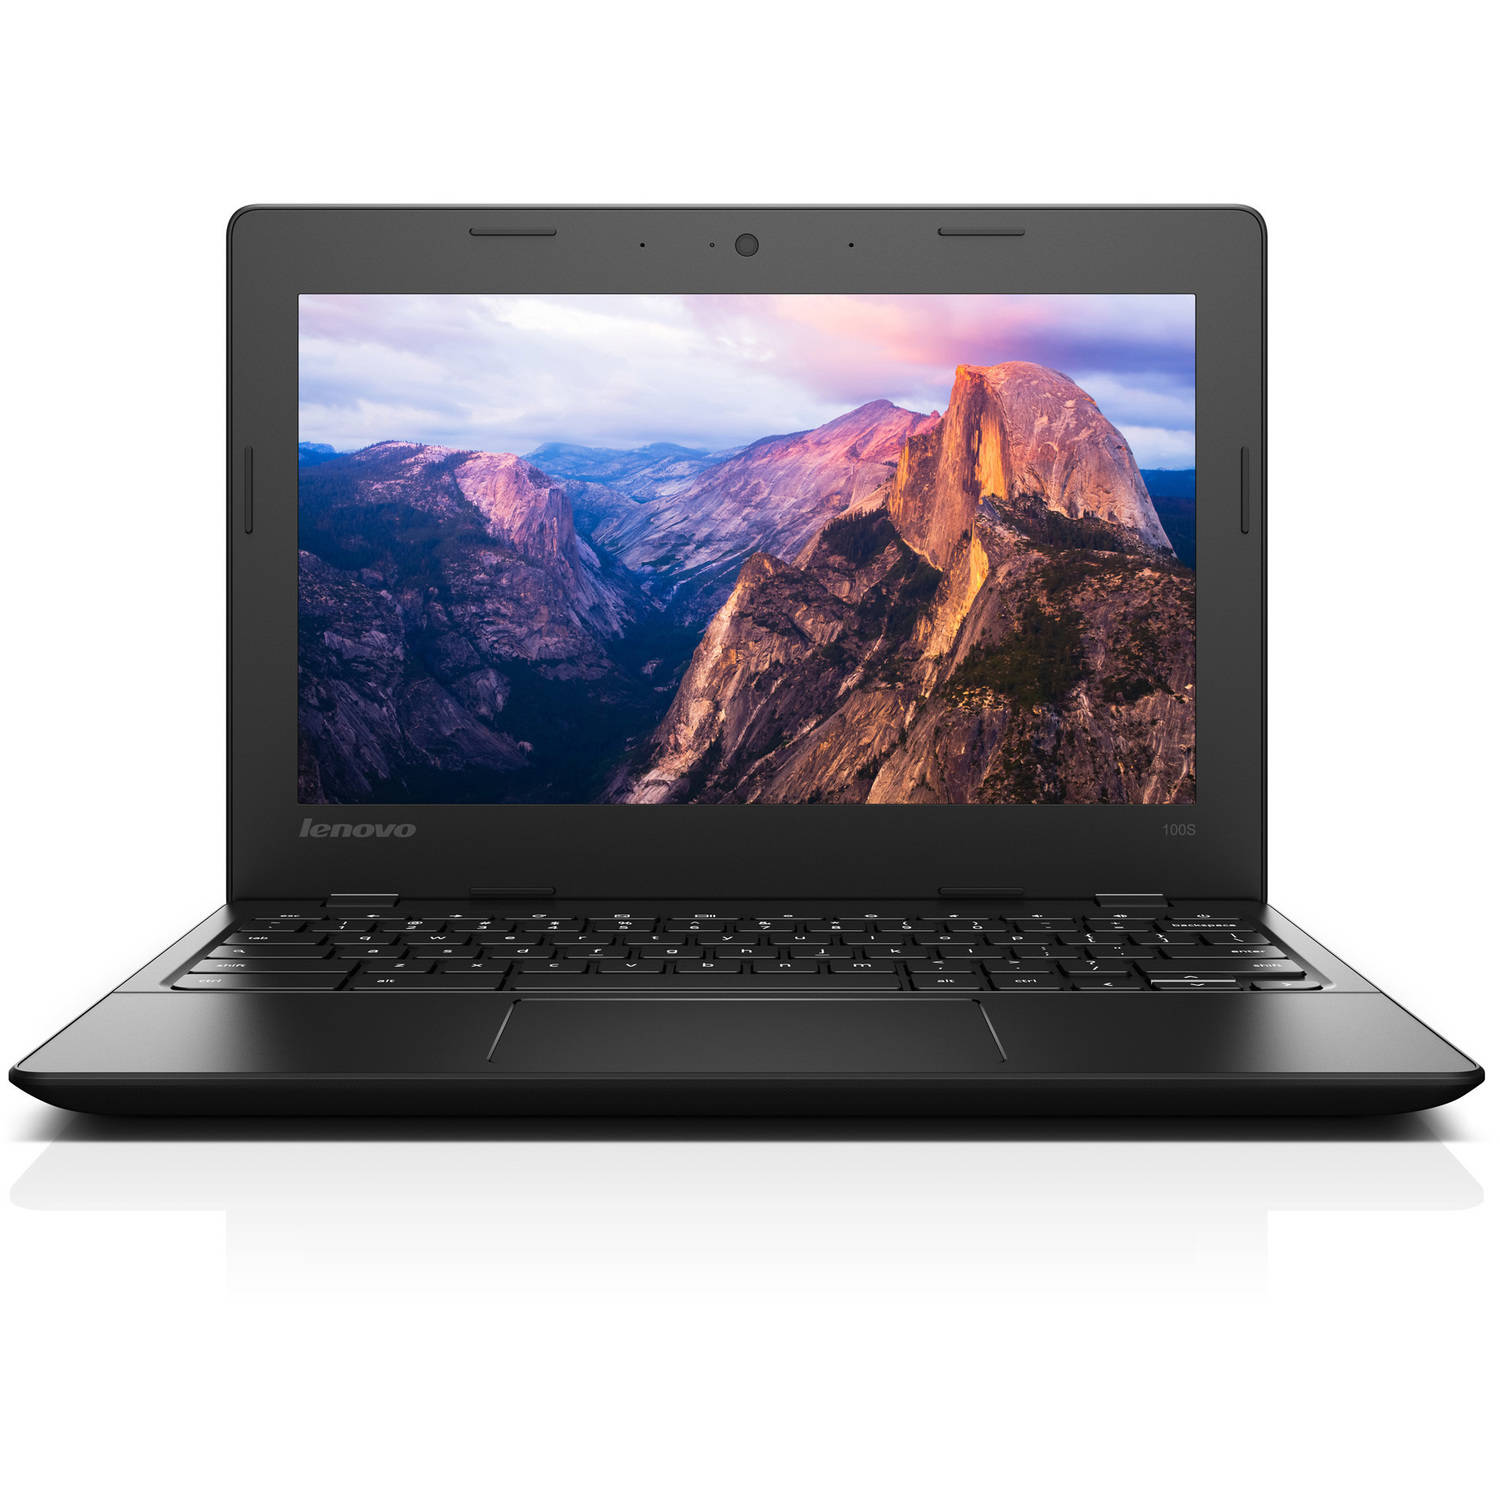 "Lenovo Black 11.6""  IdeaPad 100S Chromebook PC with Intel Celeron N2840 Processor, 2GB Memory, 16GB Hard Drive and Chrome OS"